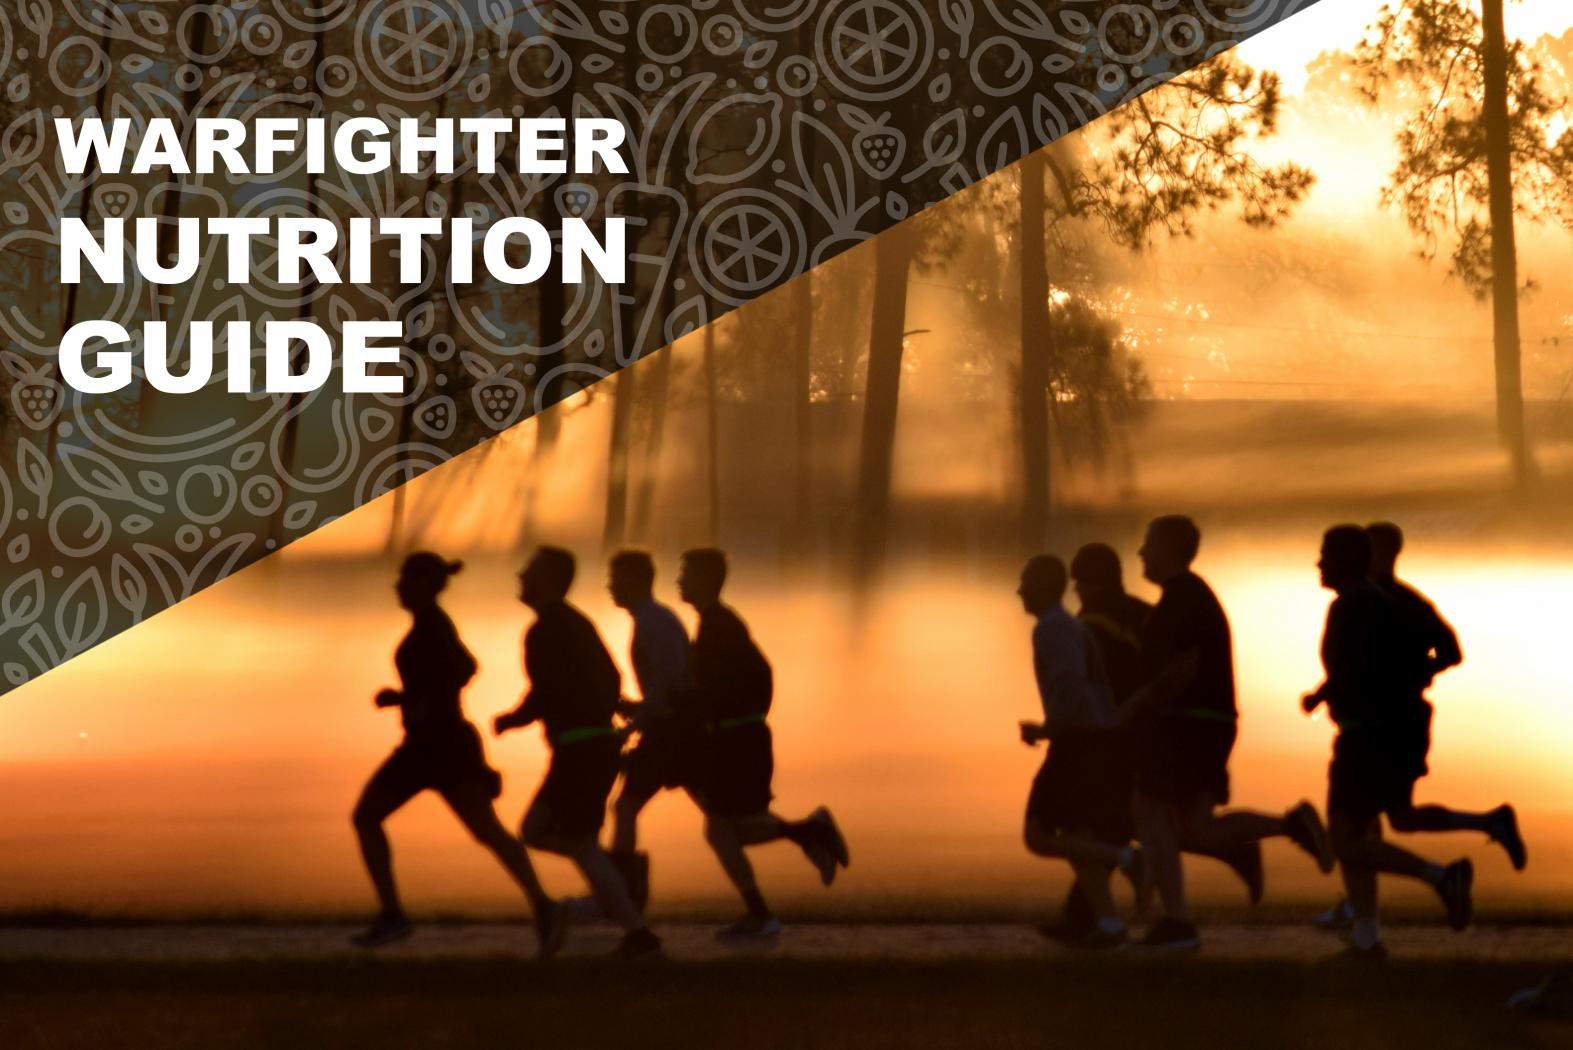 Warfighter Nutrition Guide. Silhouette of people running at sunrise.